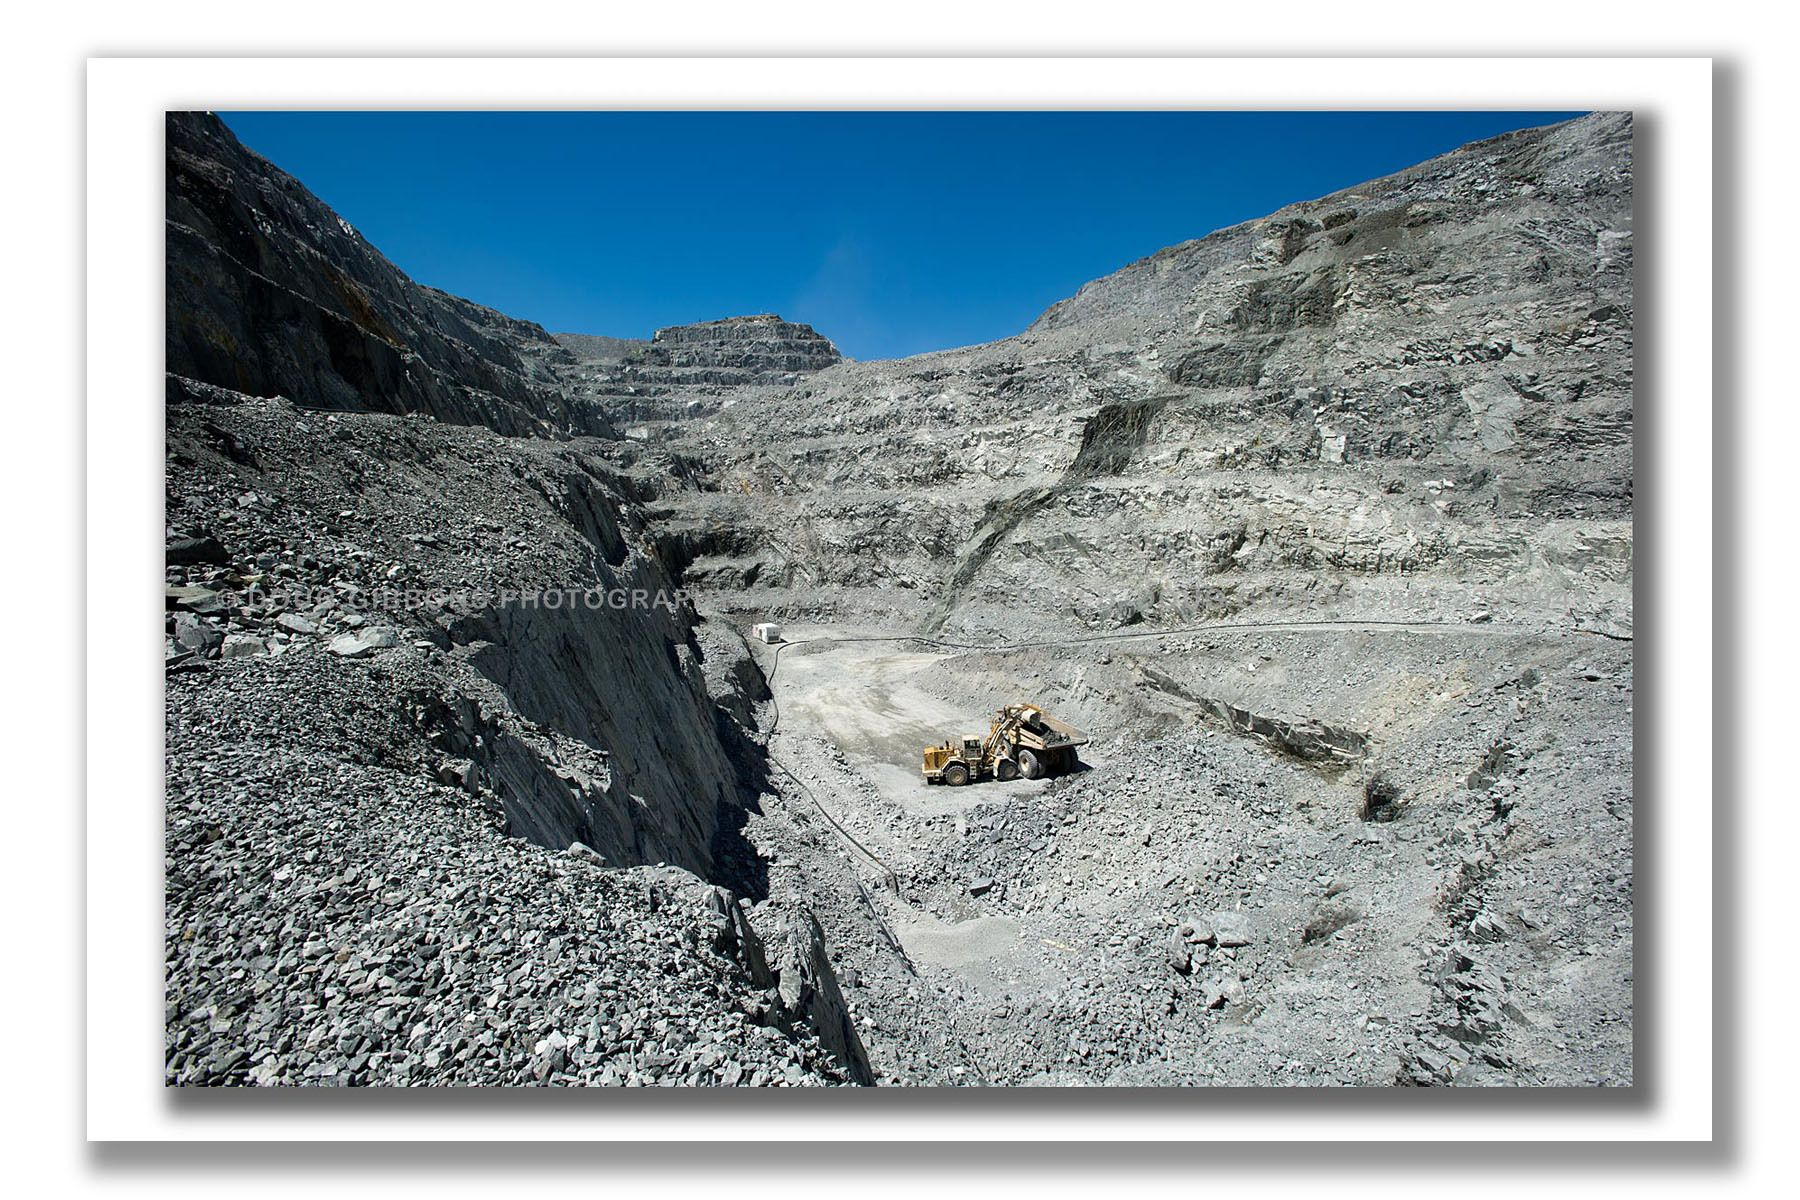 Working in the open pit